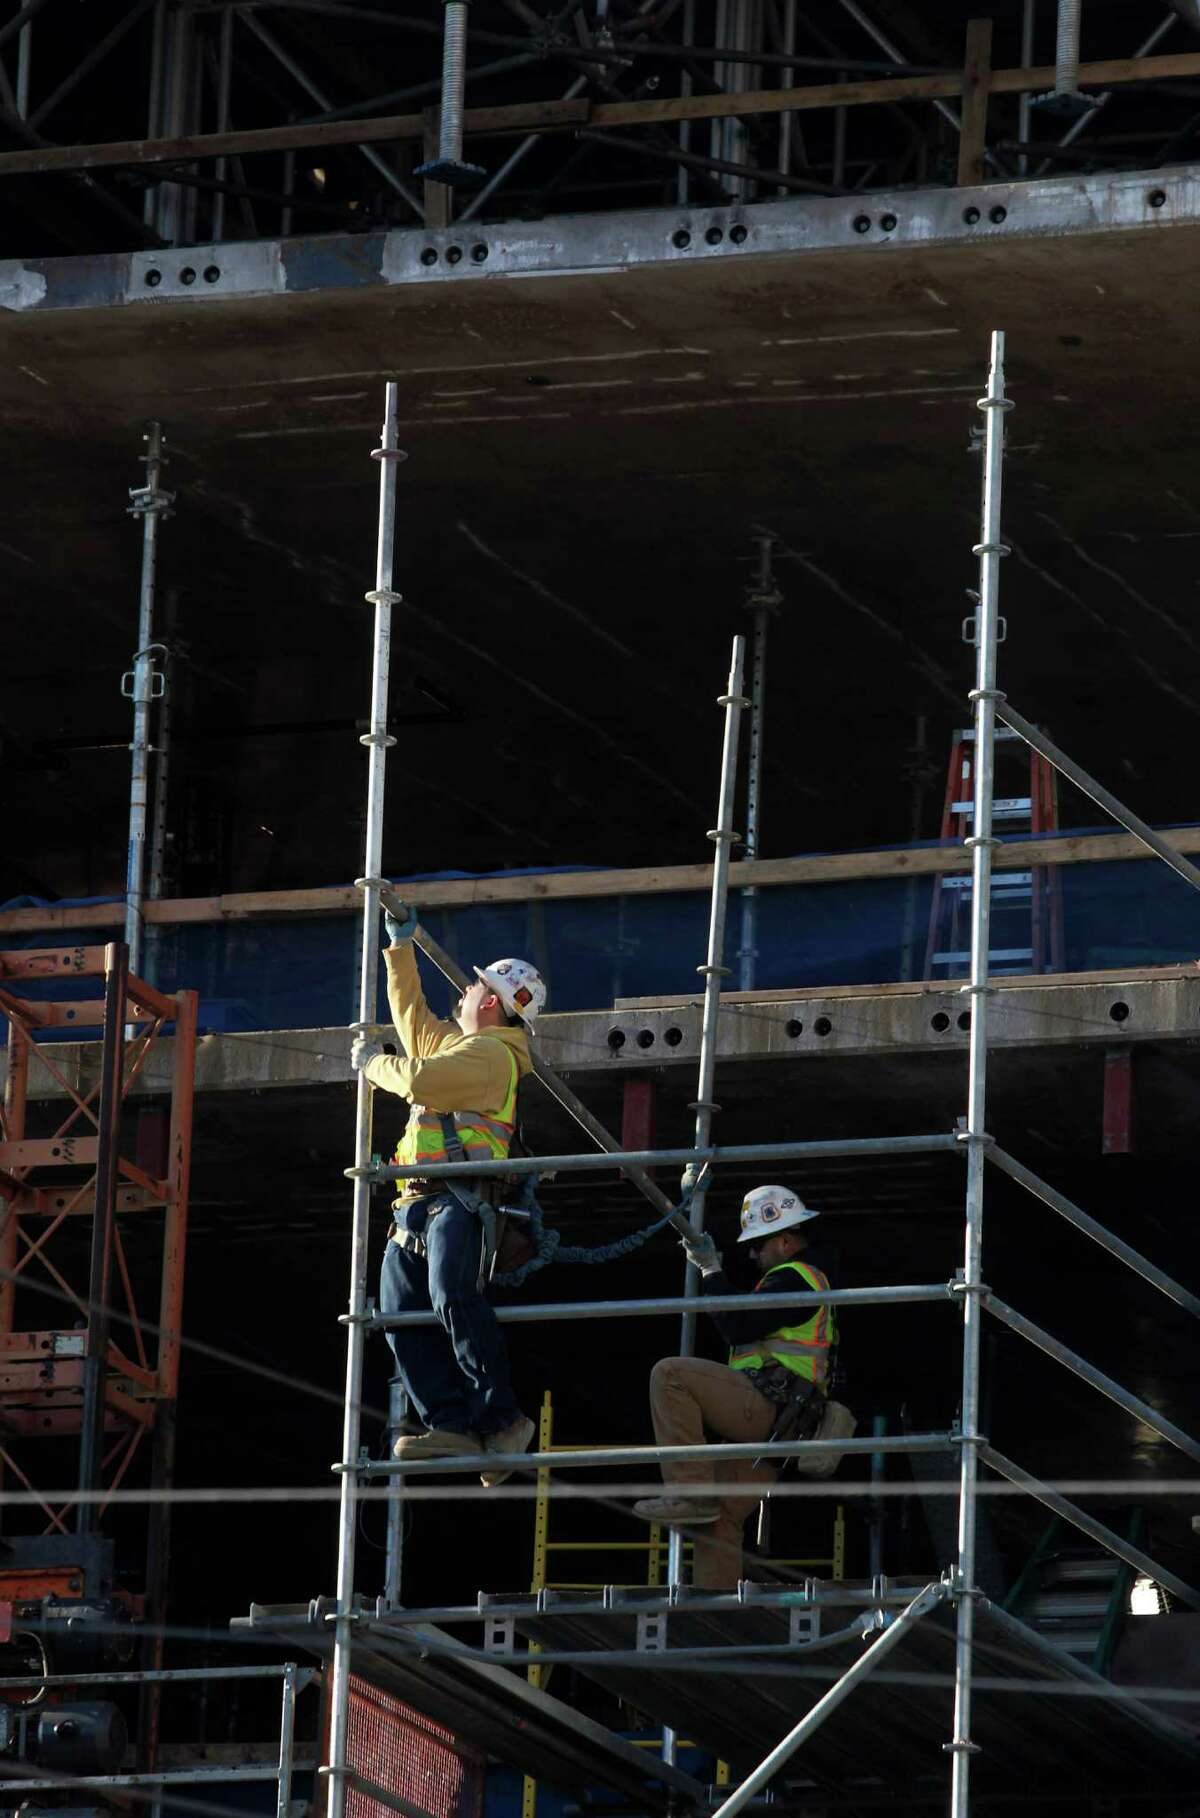 Construction workers build scaffolding for a residential project at 10th and Mission streets in San Francisco on Tuesday.